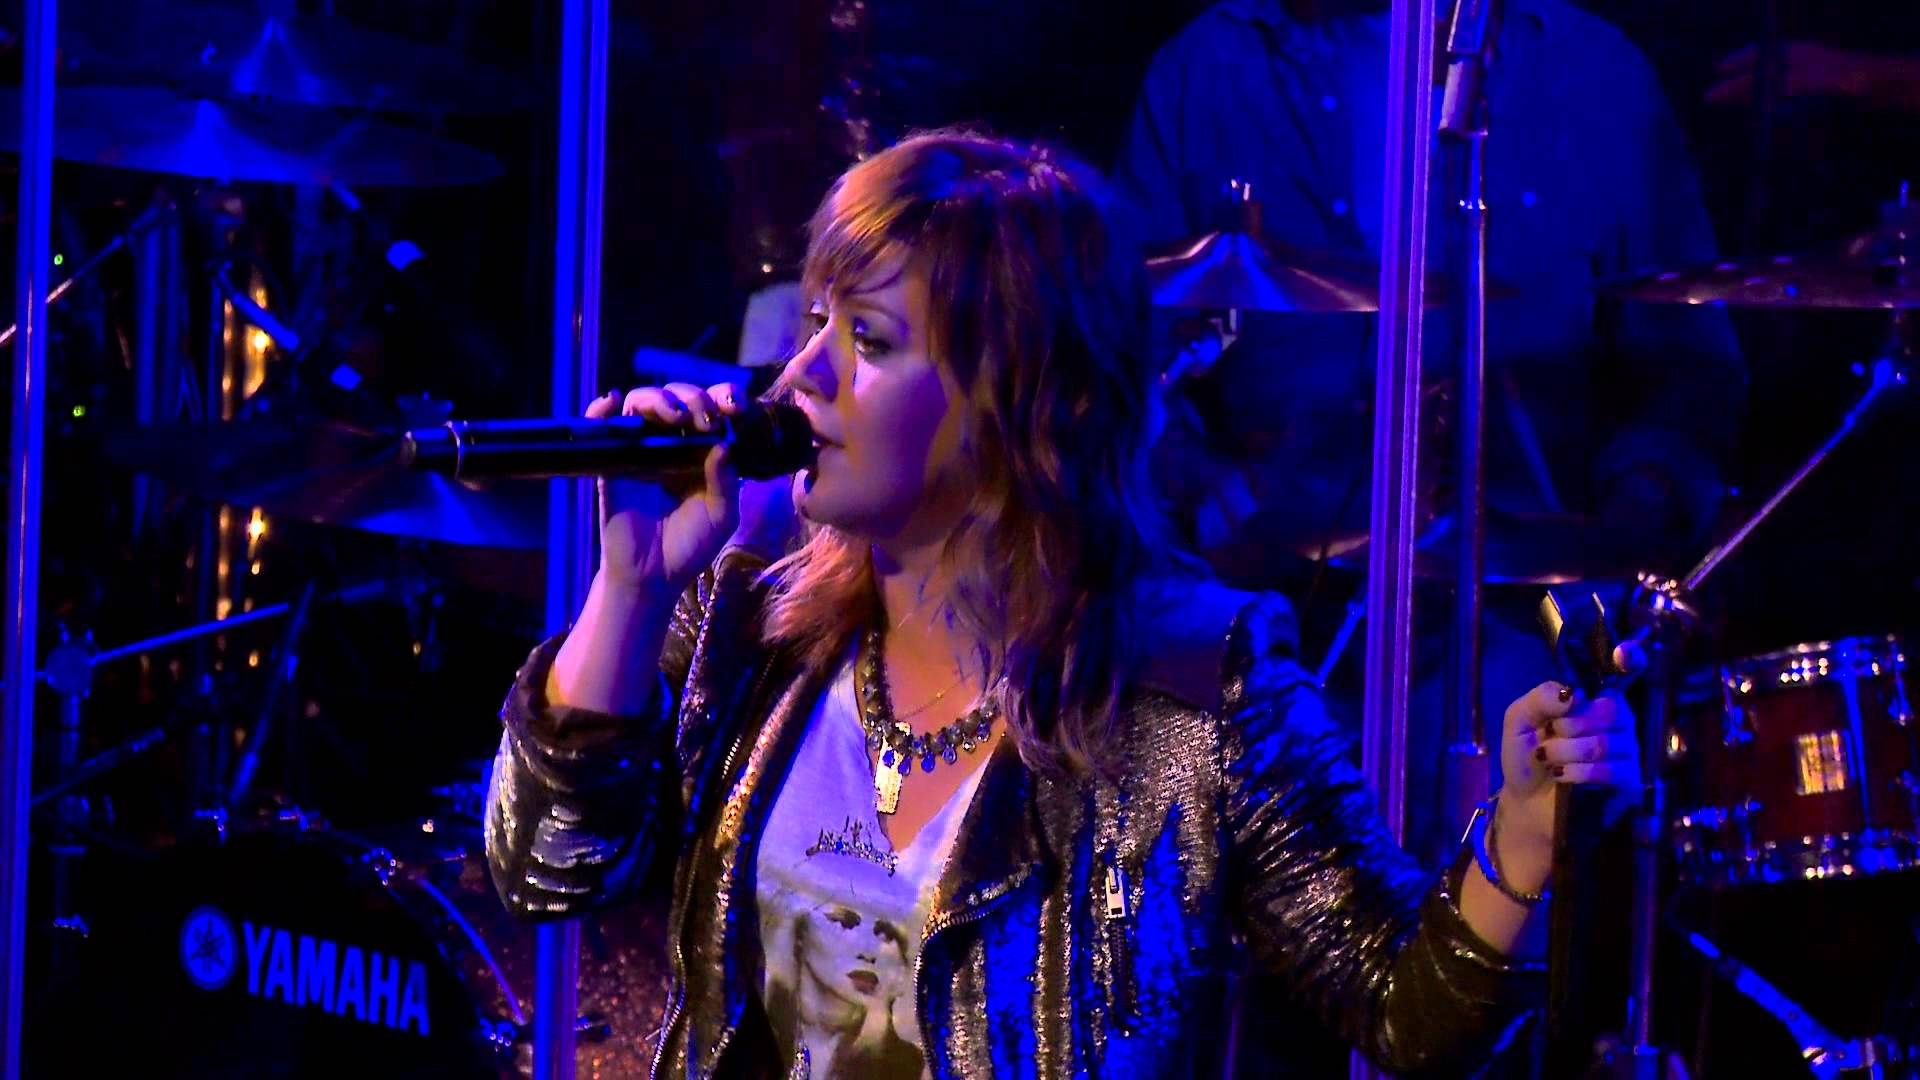 Dark Side (Live From the Troubadour 10/19/11)